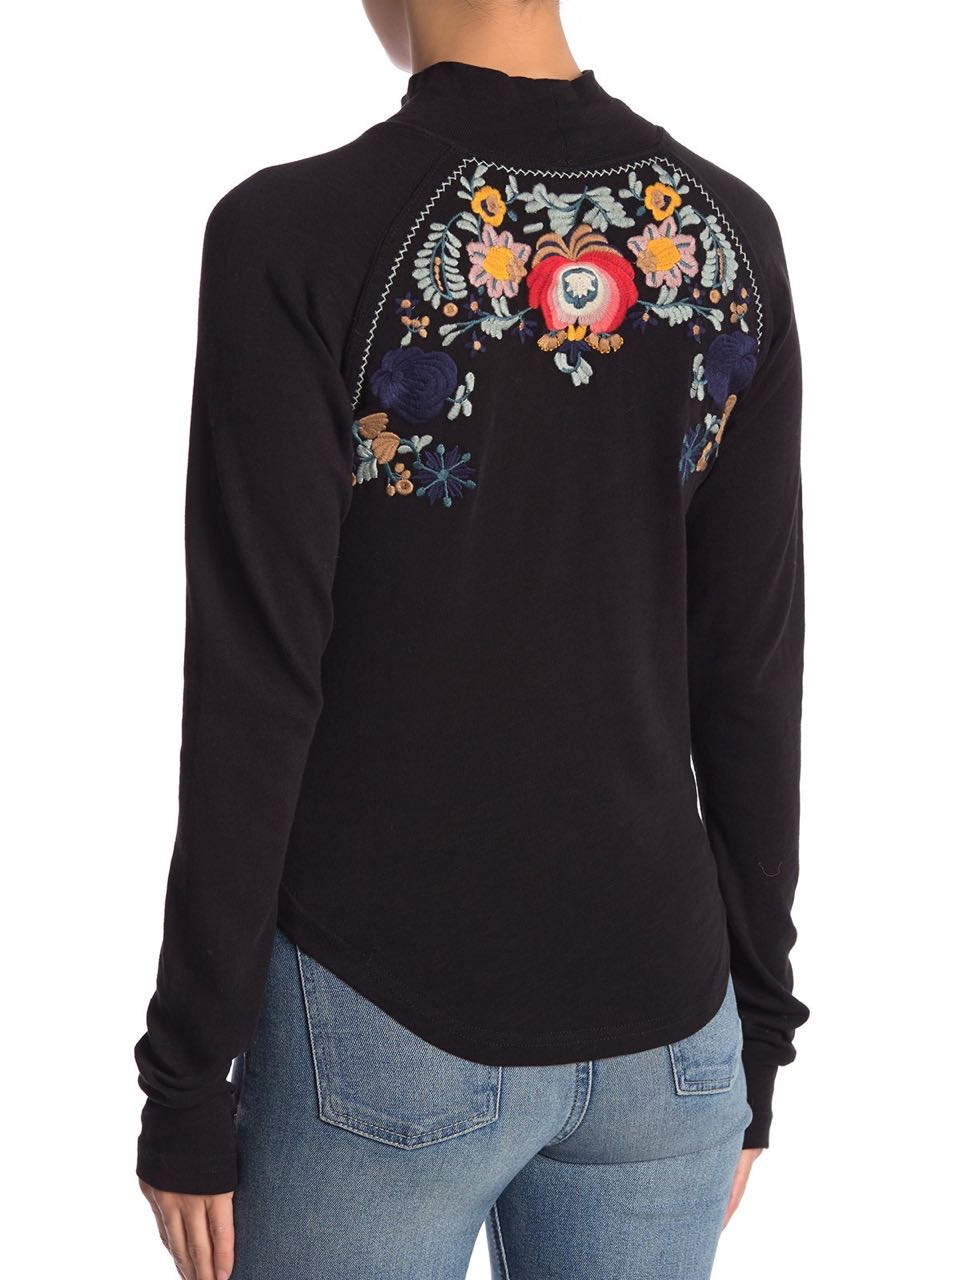 Free People Disco Rose Top With Embroidery Black Winter